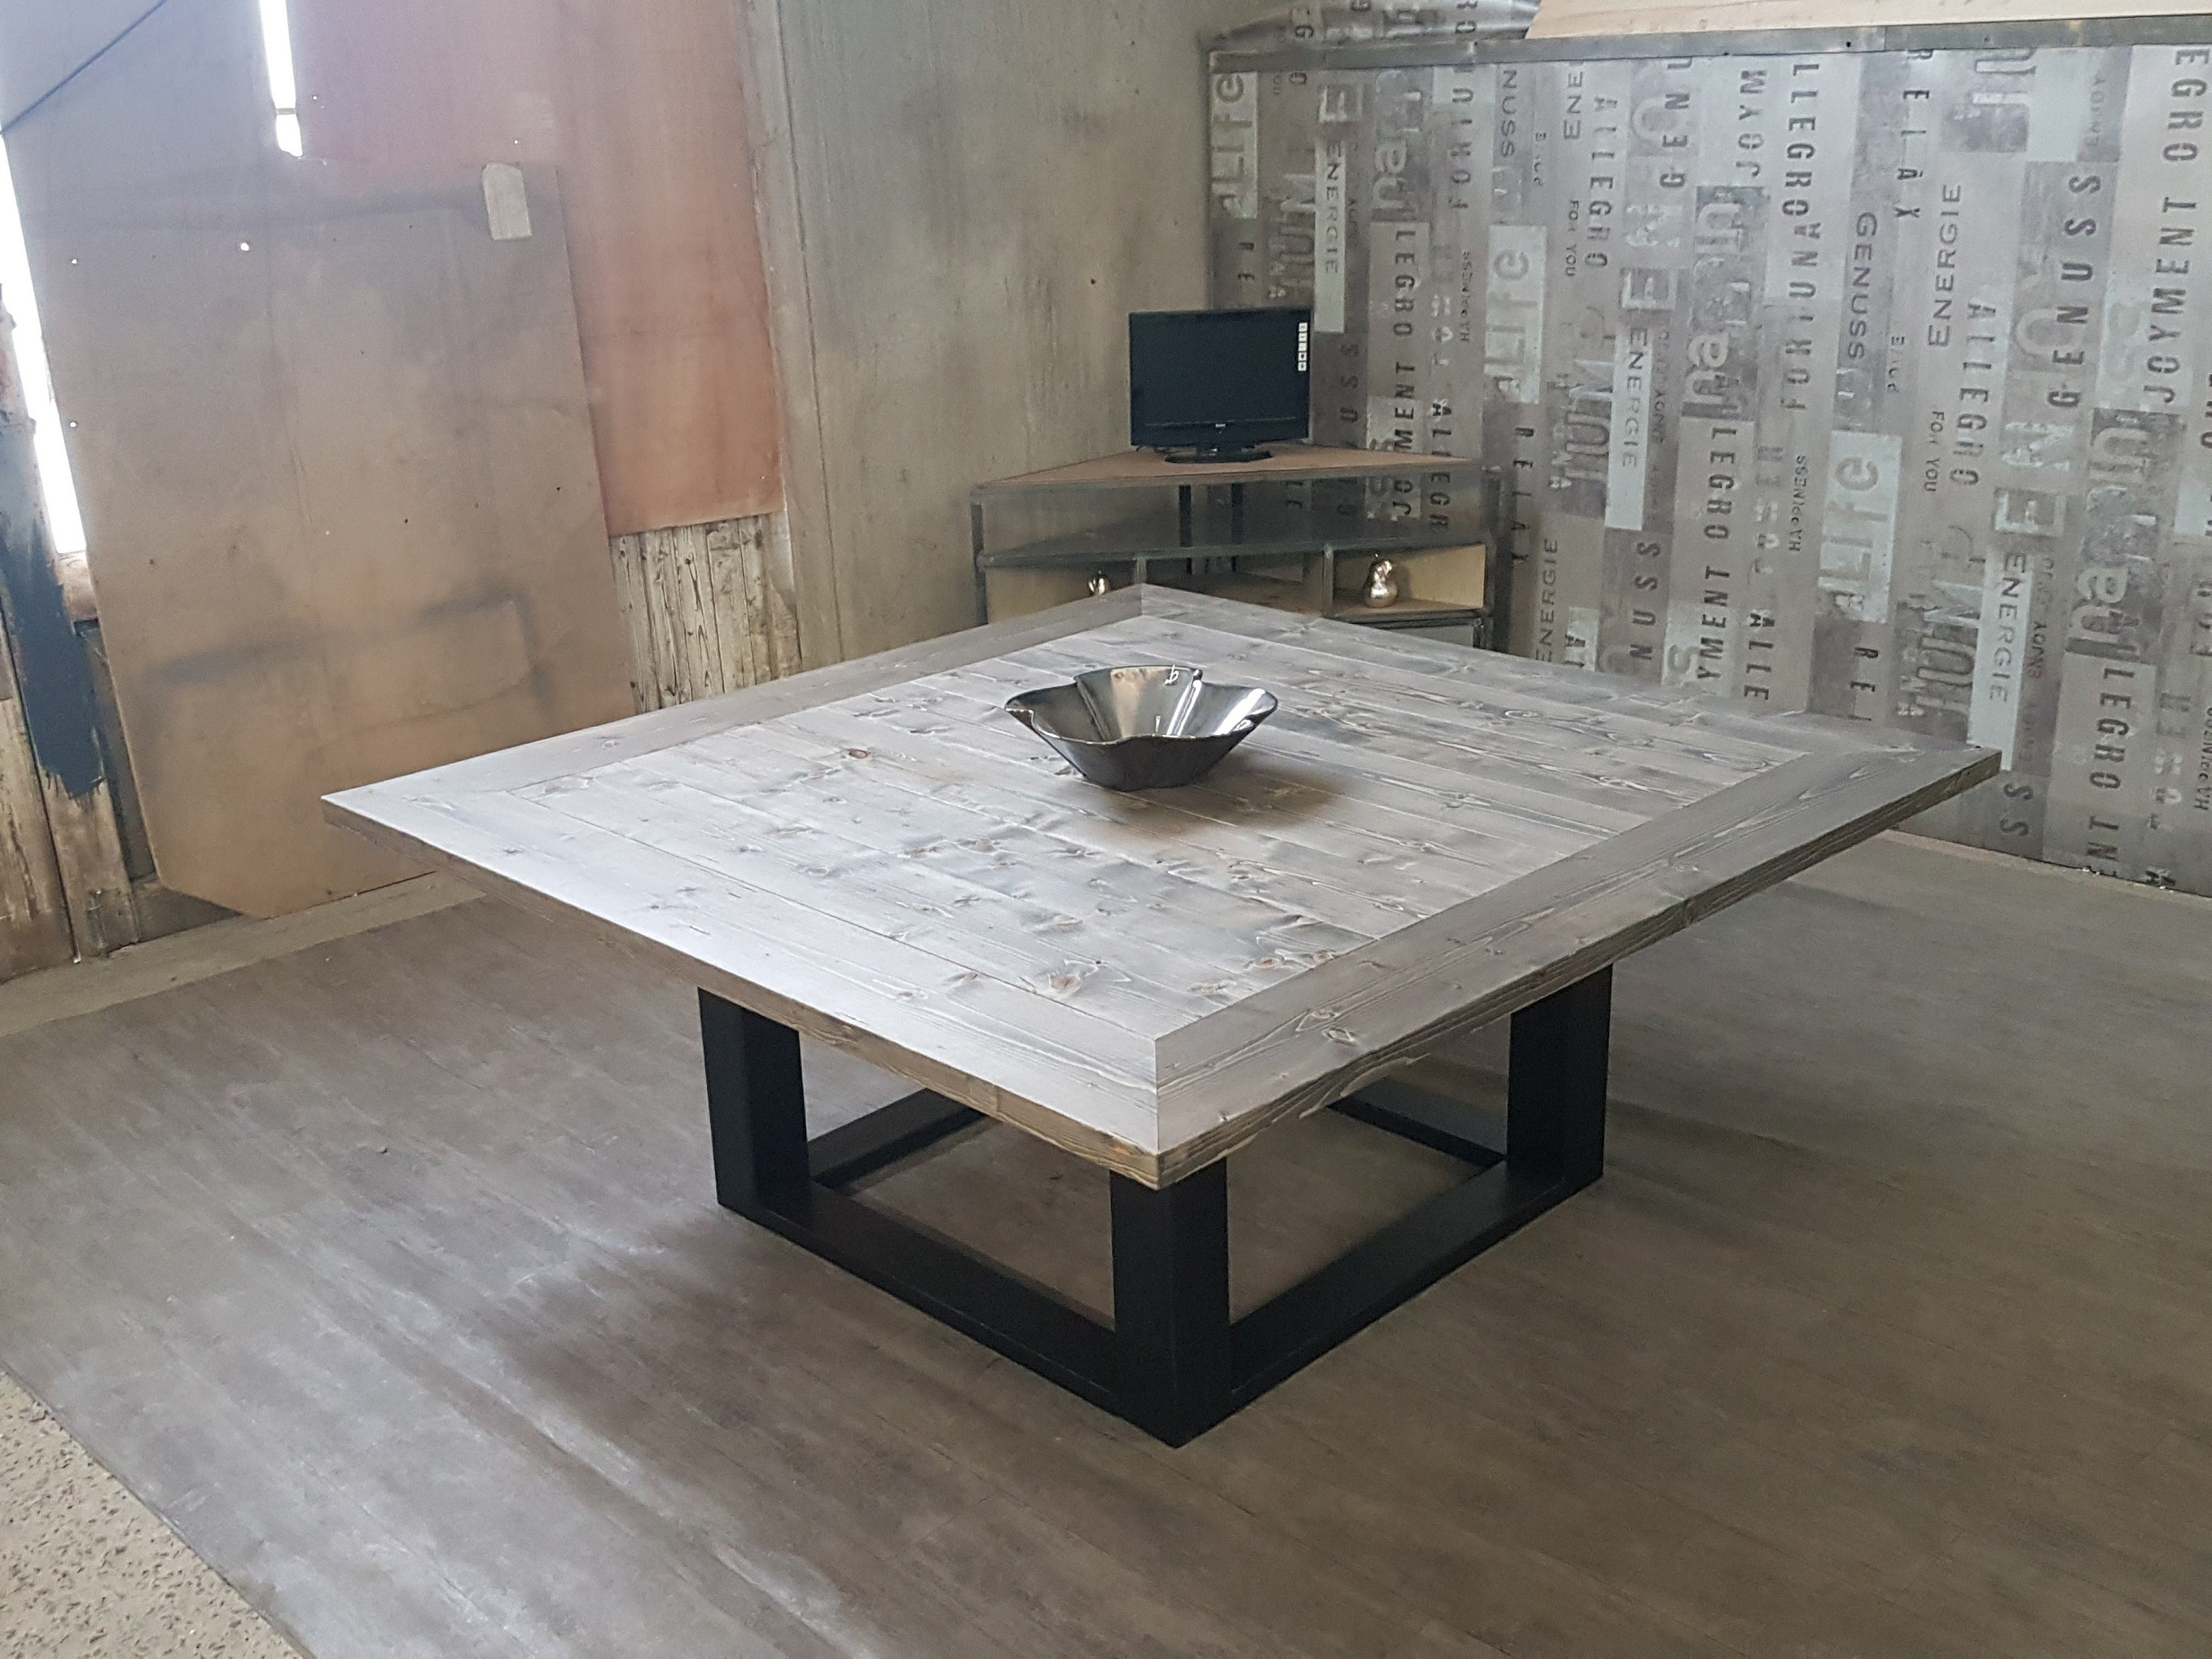 Emejing table salle a manger style atelier ideas for Table a rallonge salle a manger